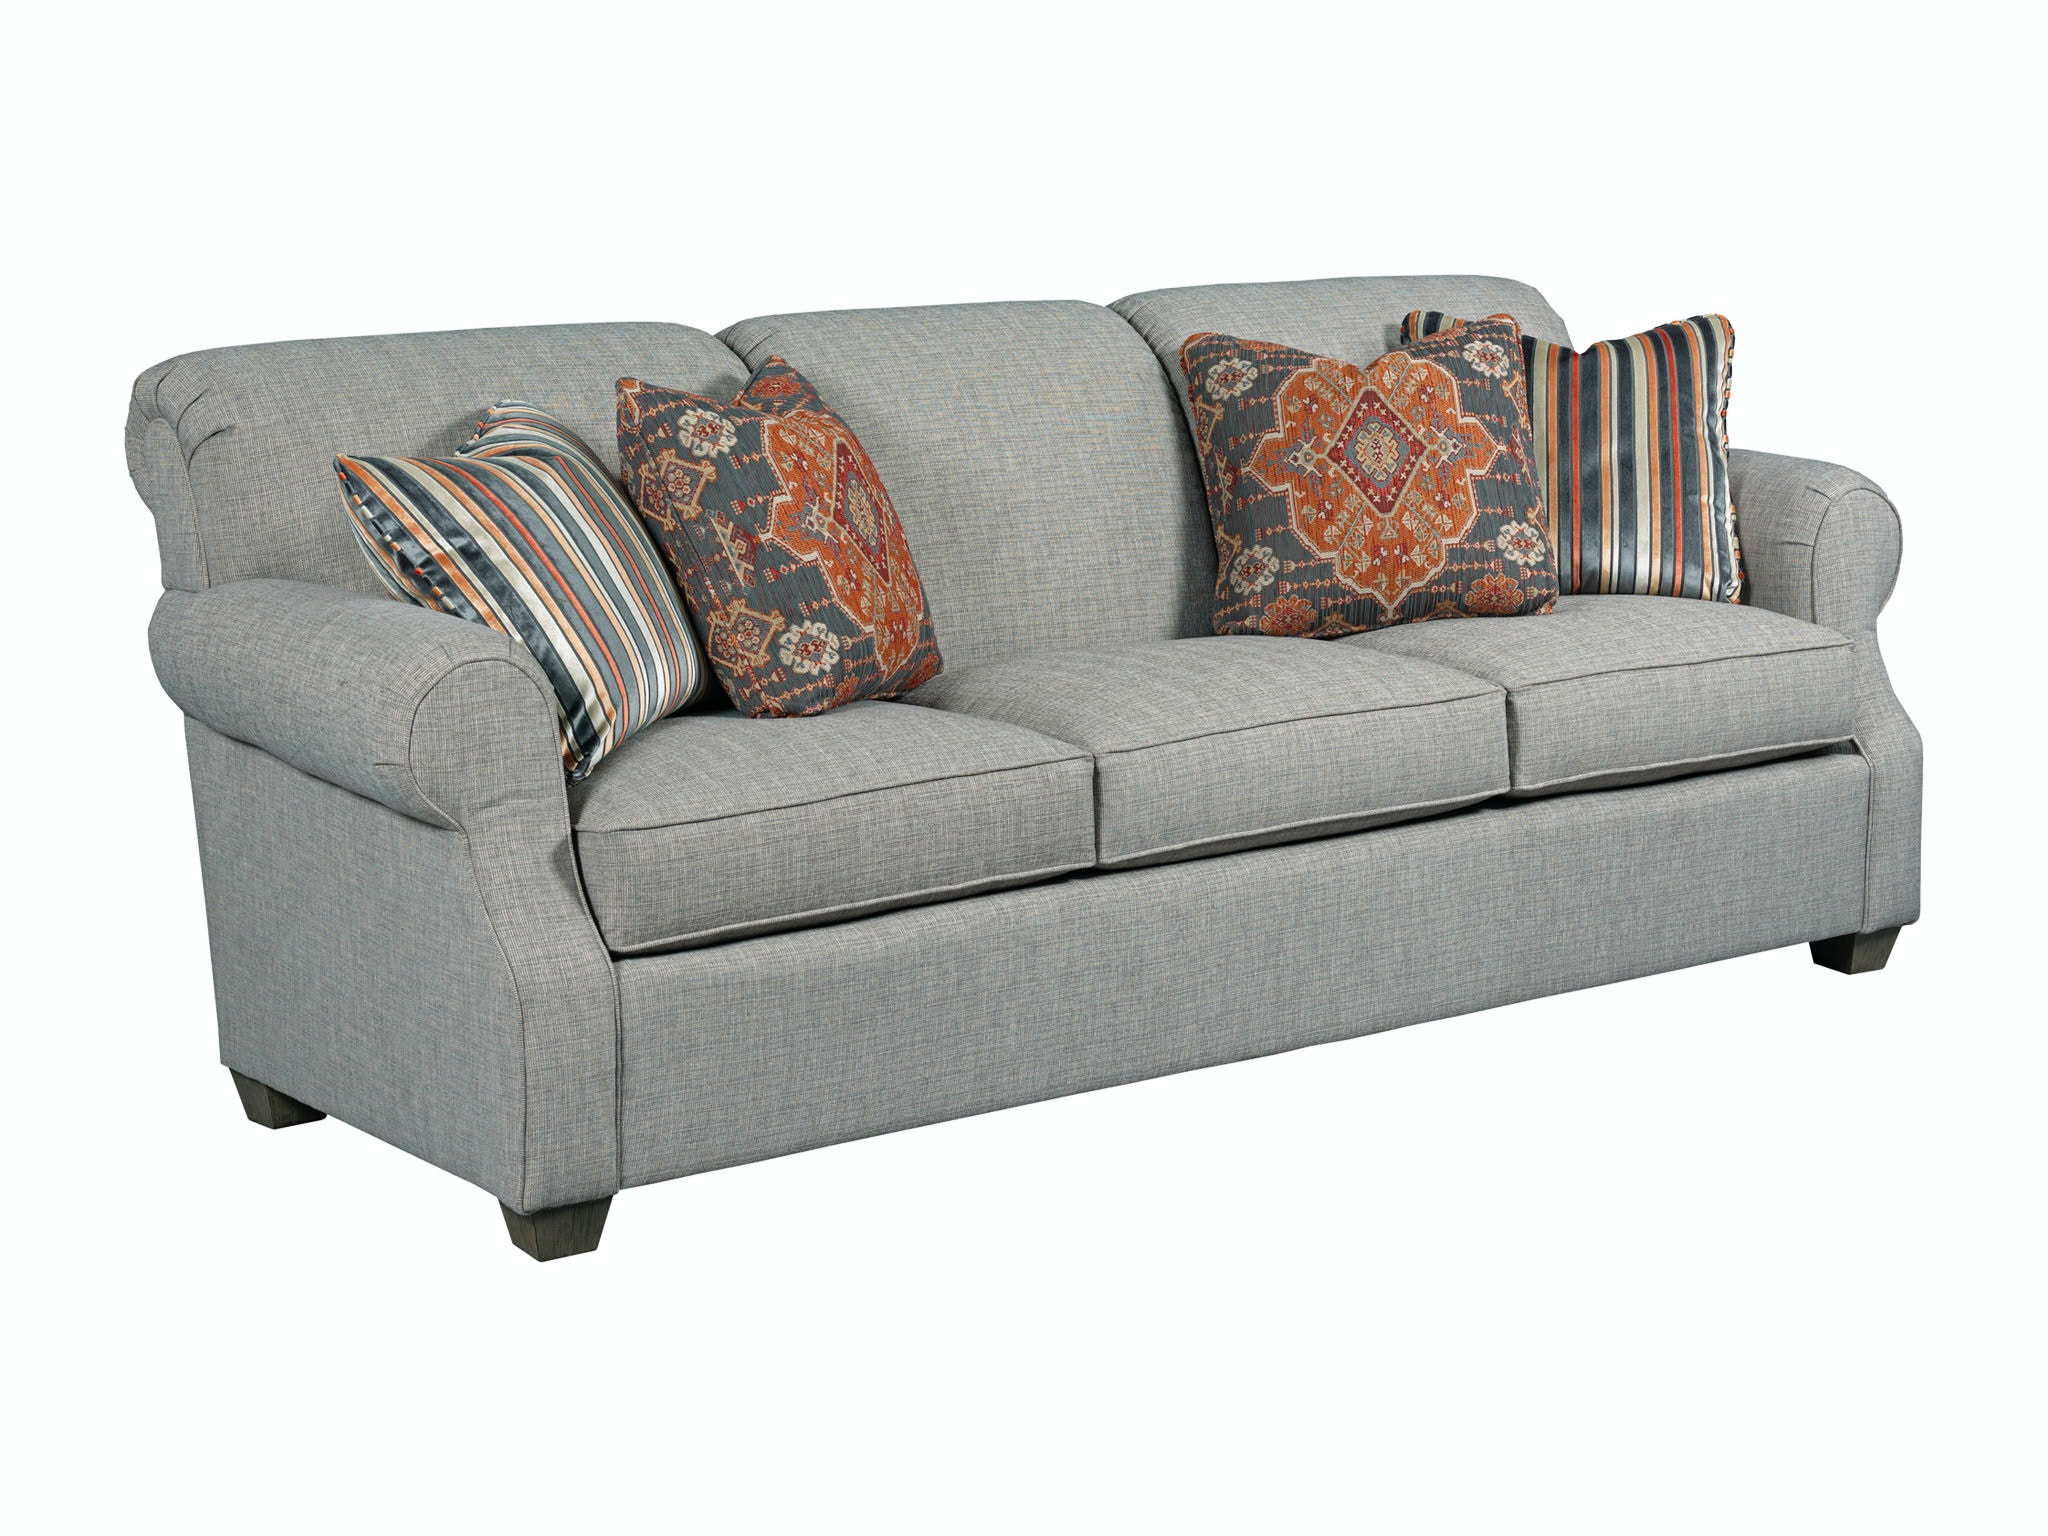 Kincaid Furniture Lynchburg Grande Sofa 814 87